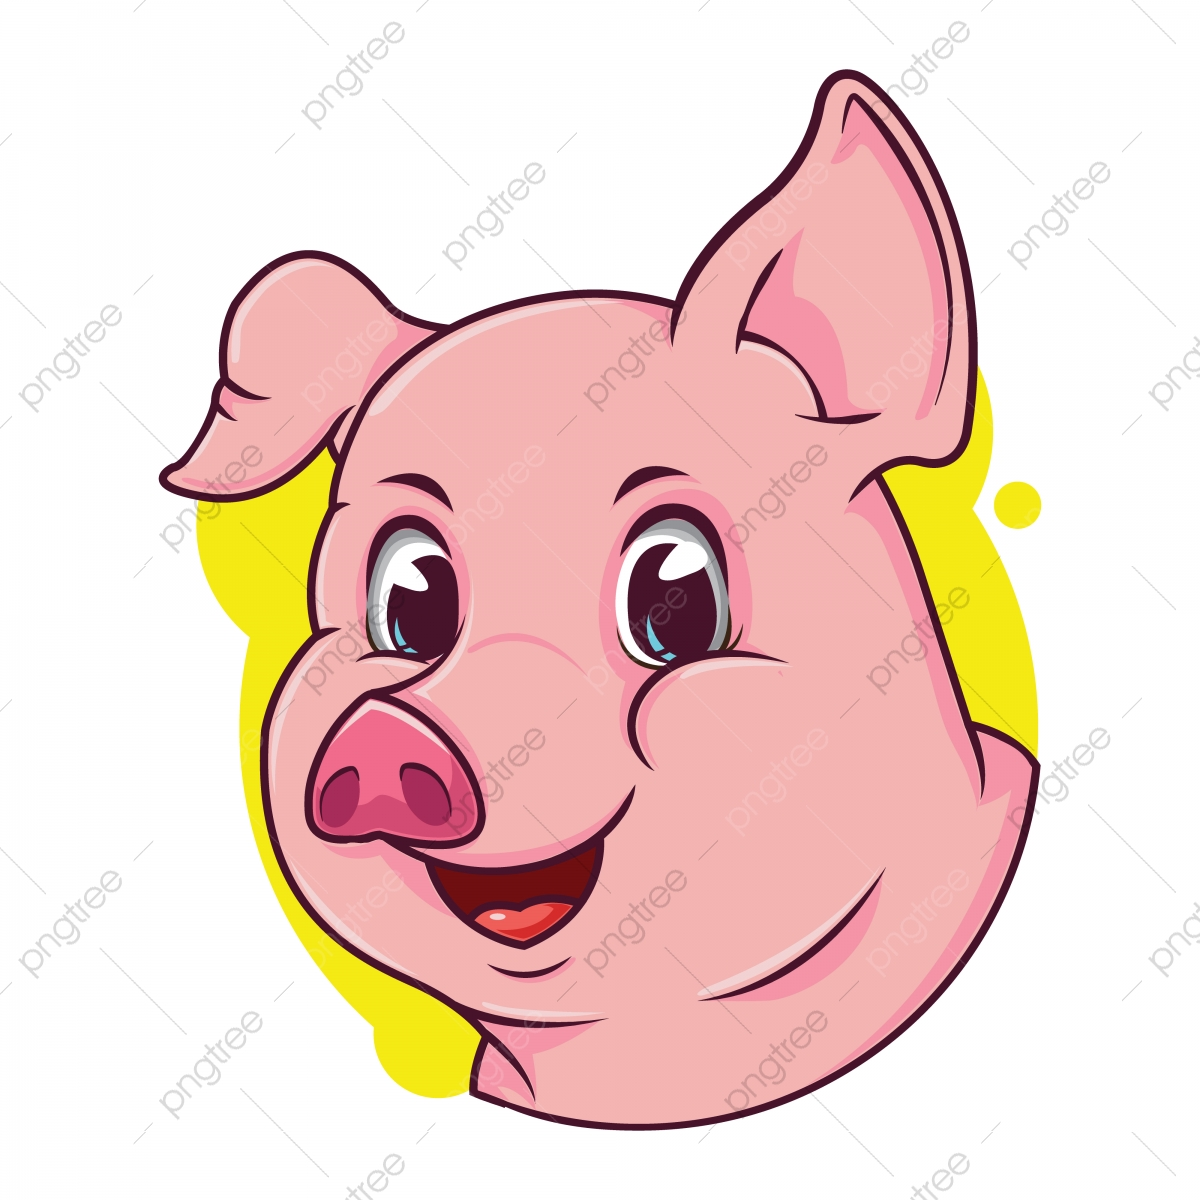 Cute Pig Avatar With A Yellow Background Avatar Market Web Png And Vector With Transparent Background For Free Download